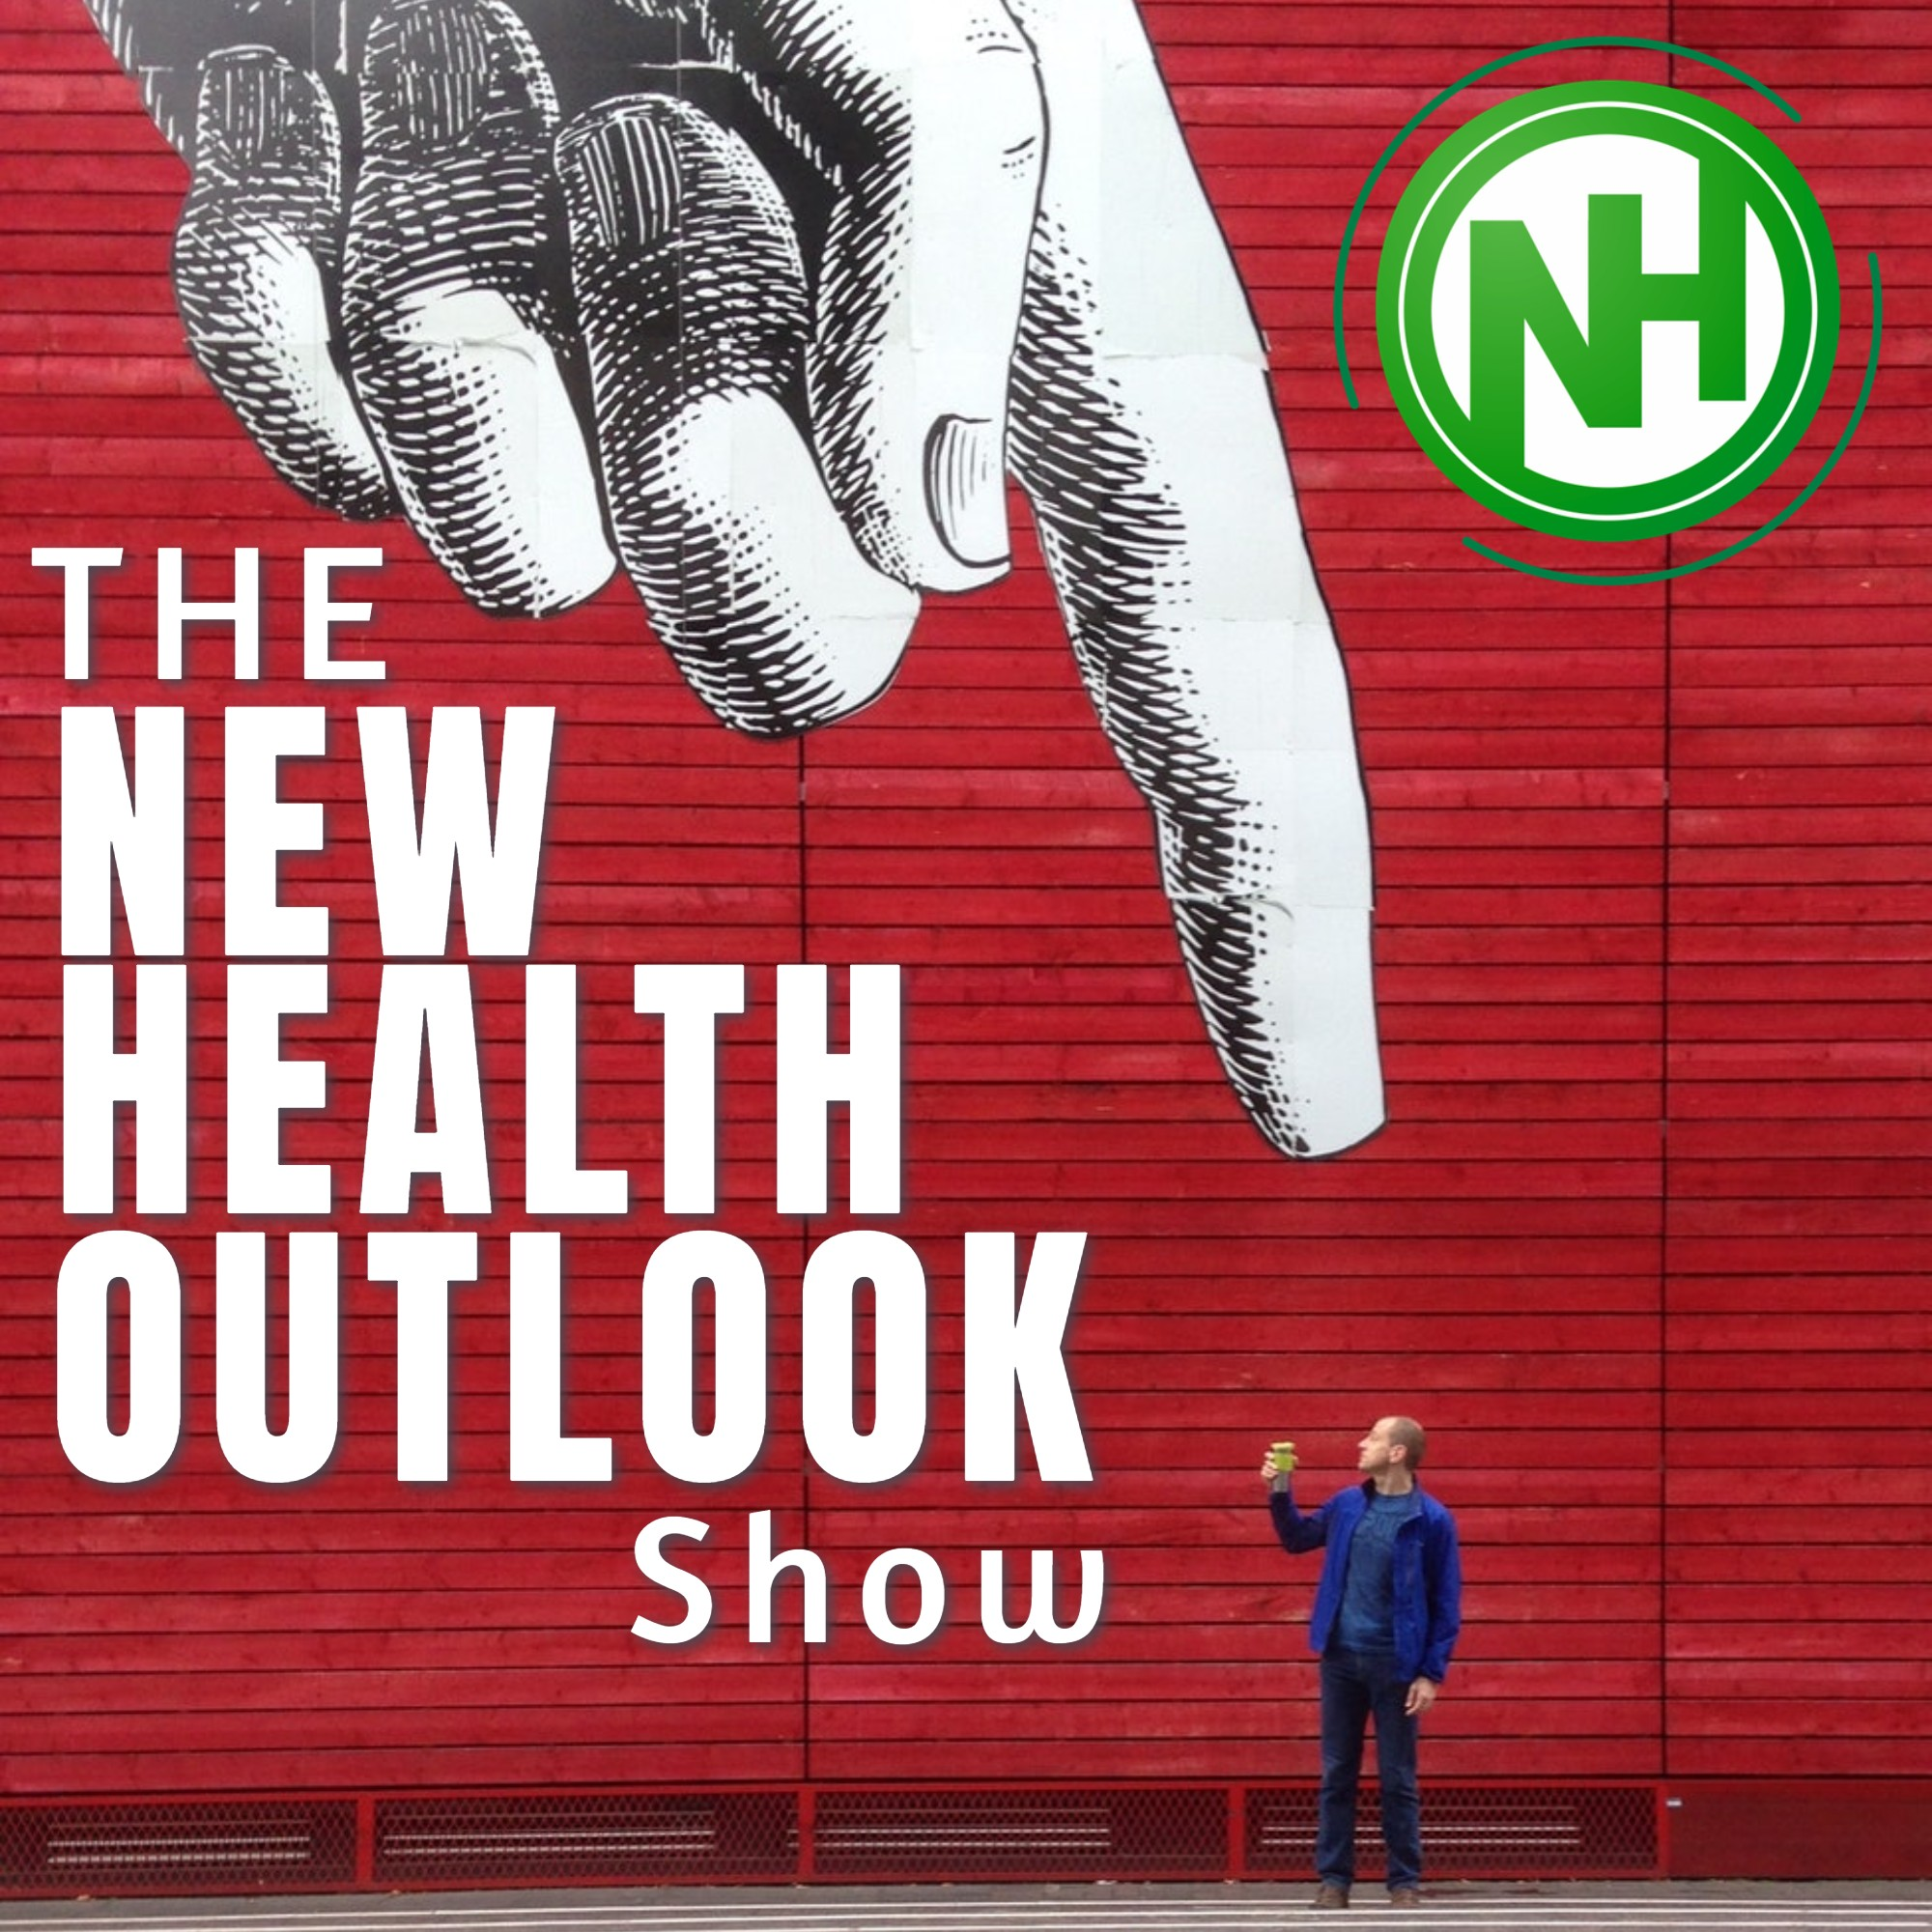 The New Health Outlook Show